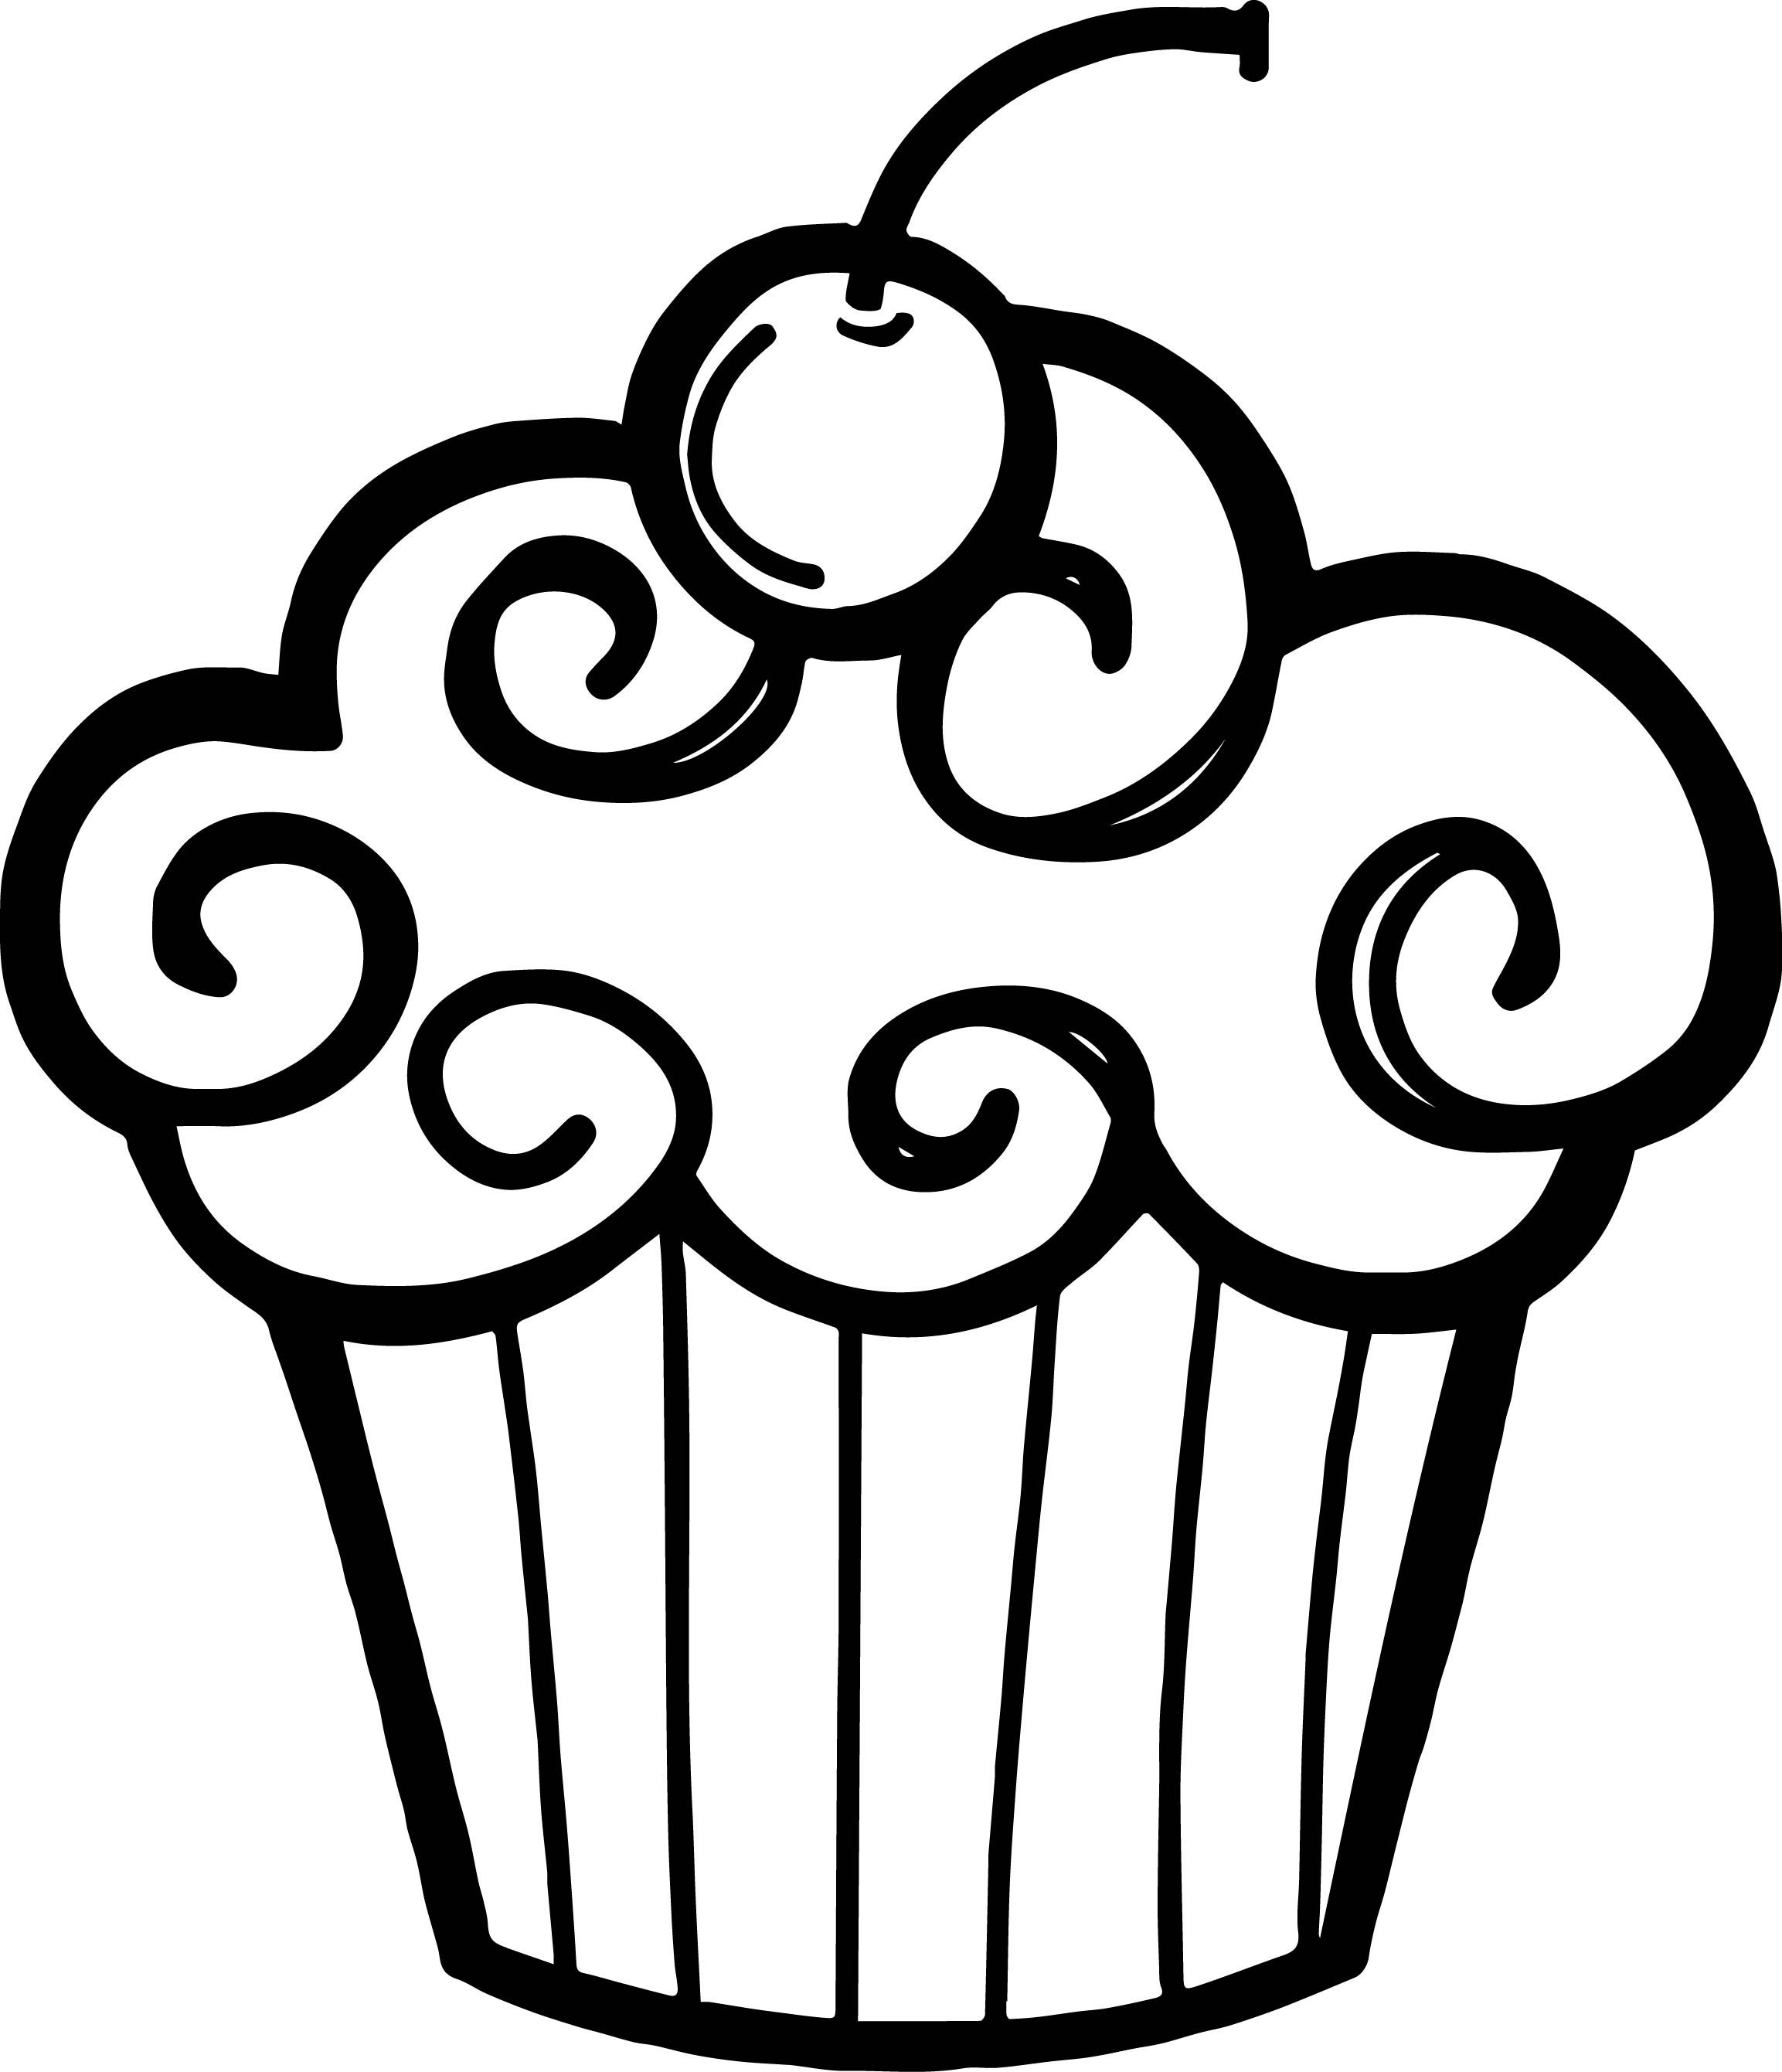 Image Result For Cute Cupcakes Clipart